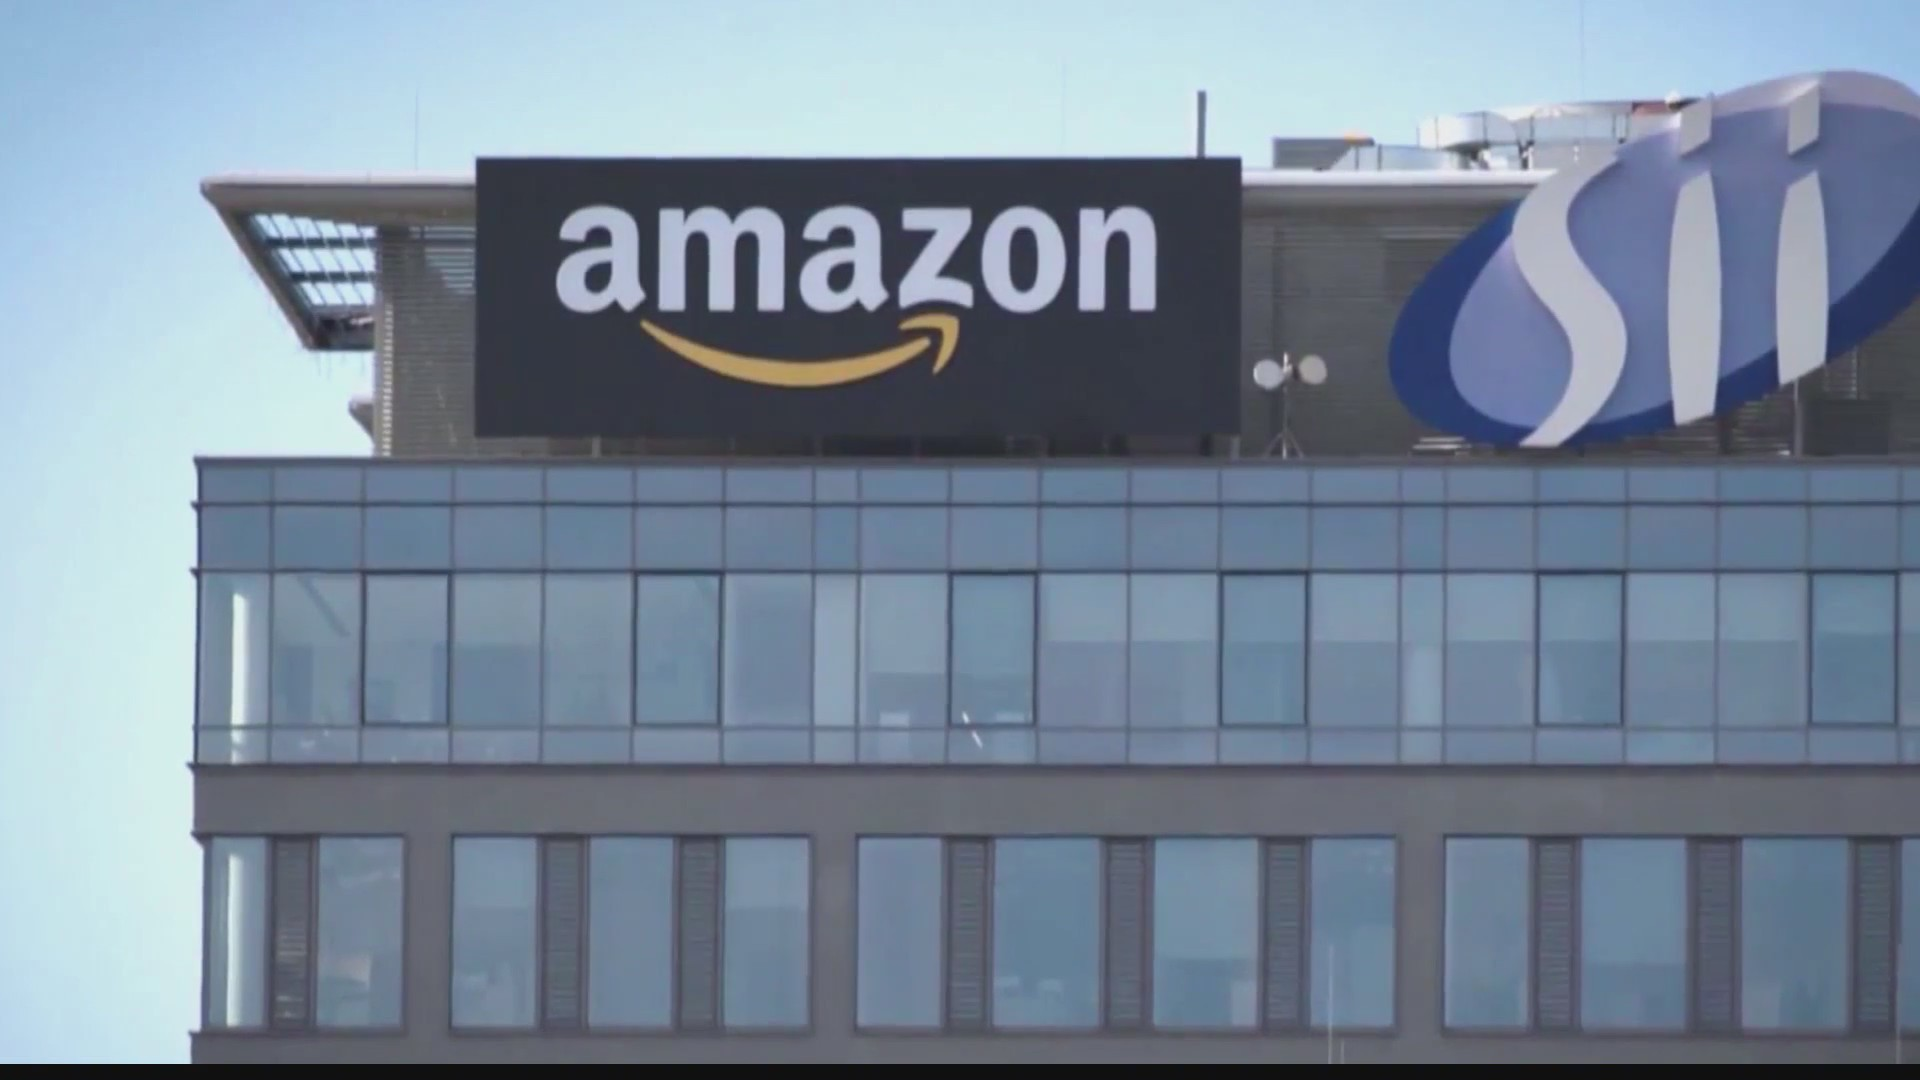 Local lawmaker wants Amazon to come to Cambria County